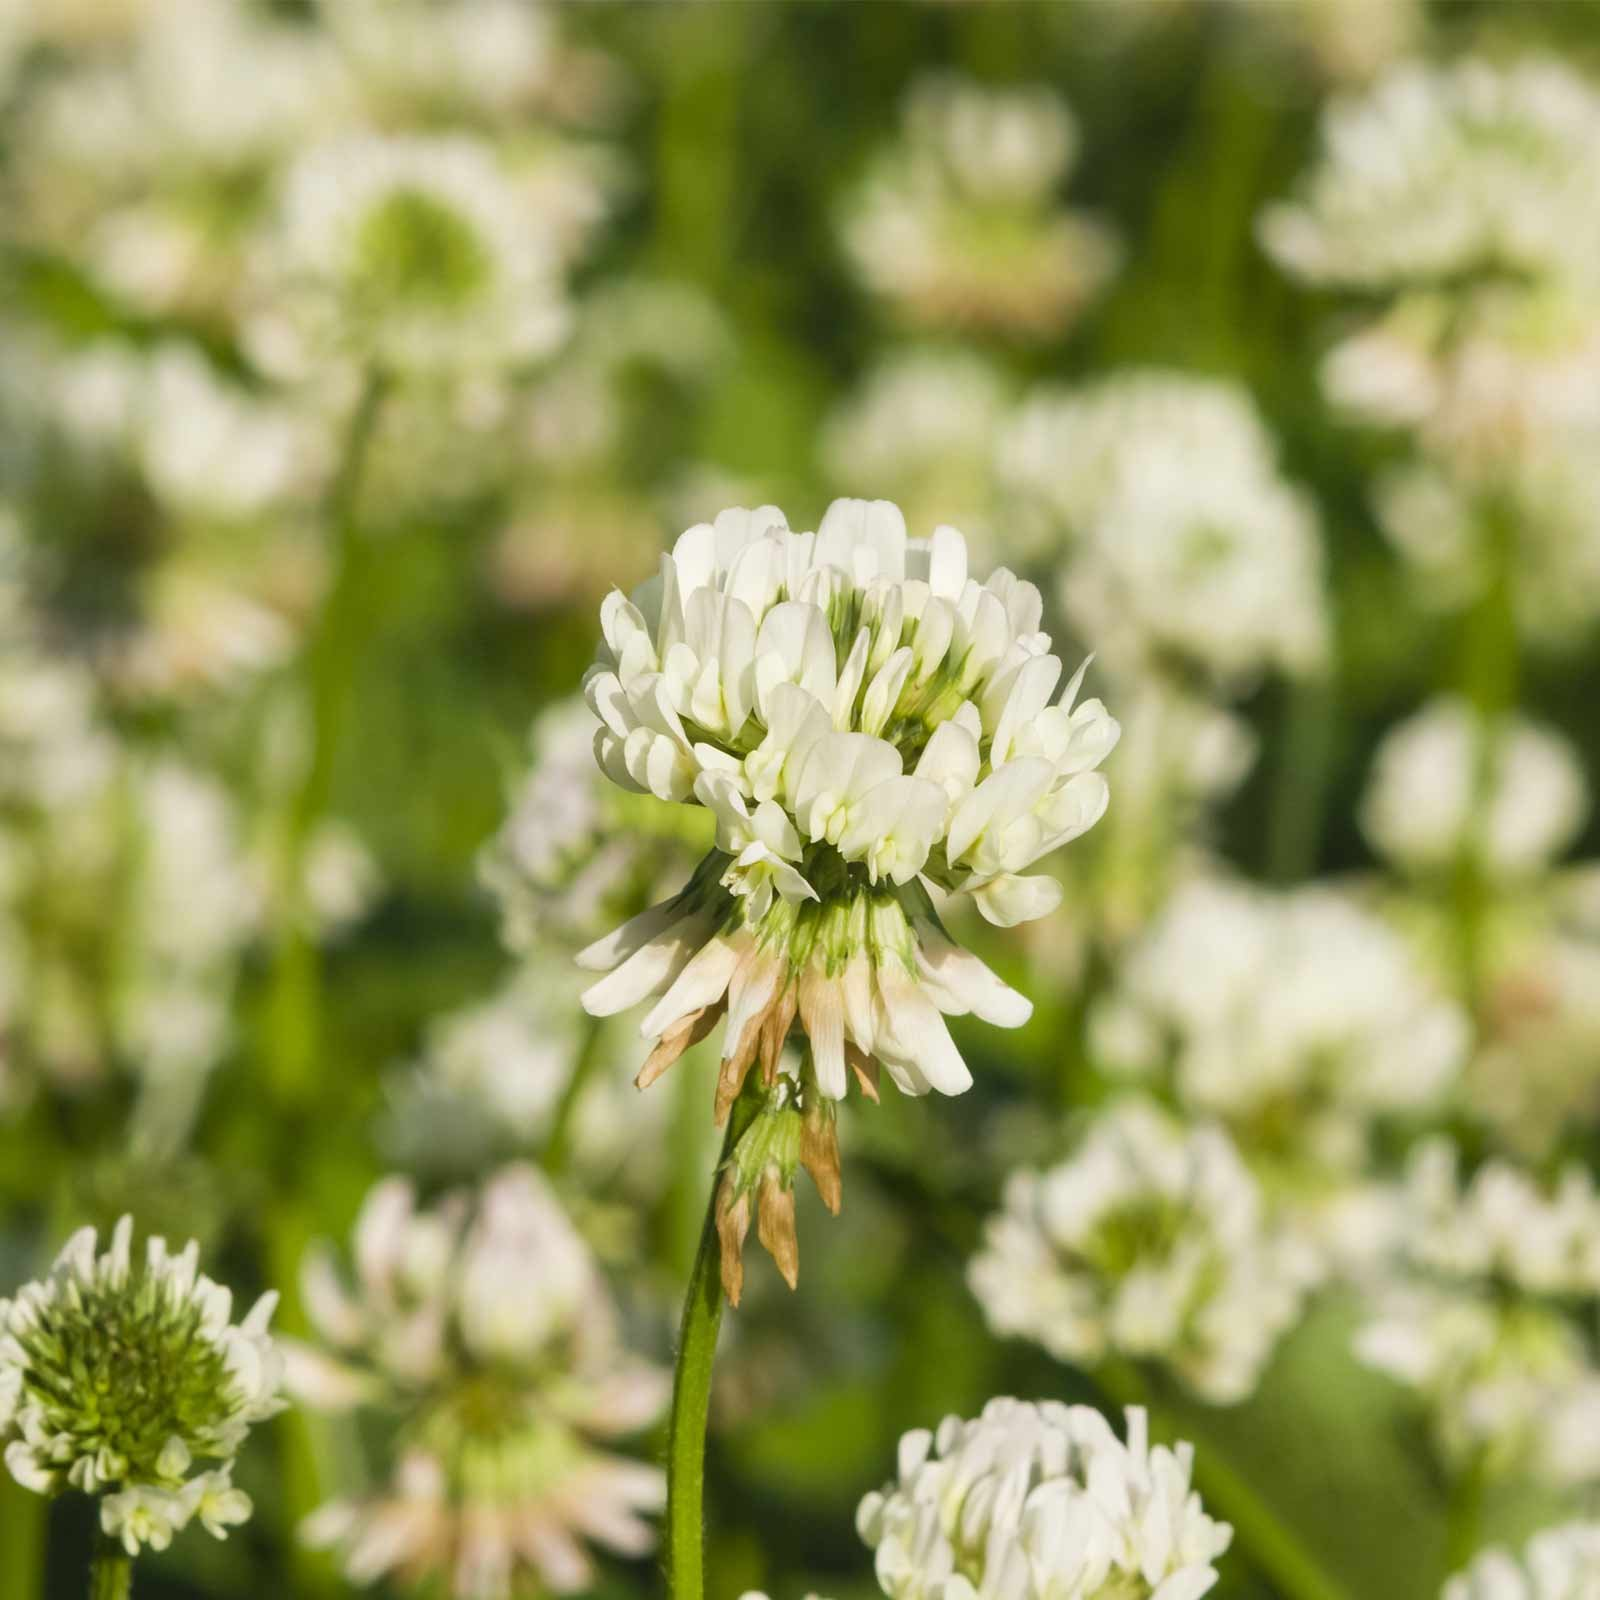 White Dutch Clover Seeds - 1 Lb - Lawn, Pasture & Cover Crop Seeds by Mountain Valley Seed Company by Mountain Valley Seed Company